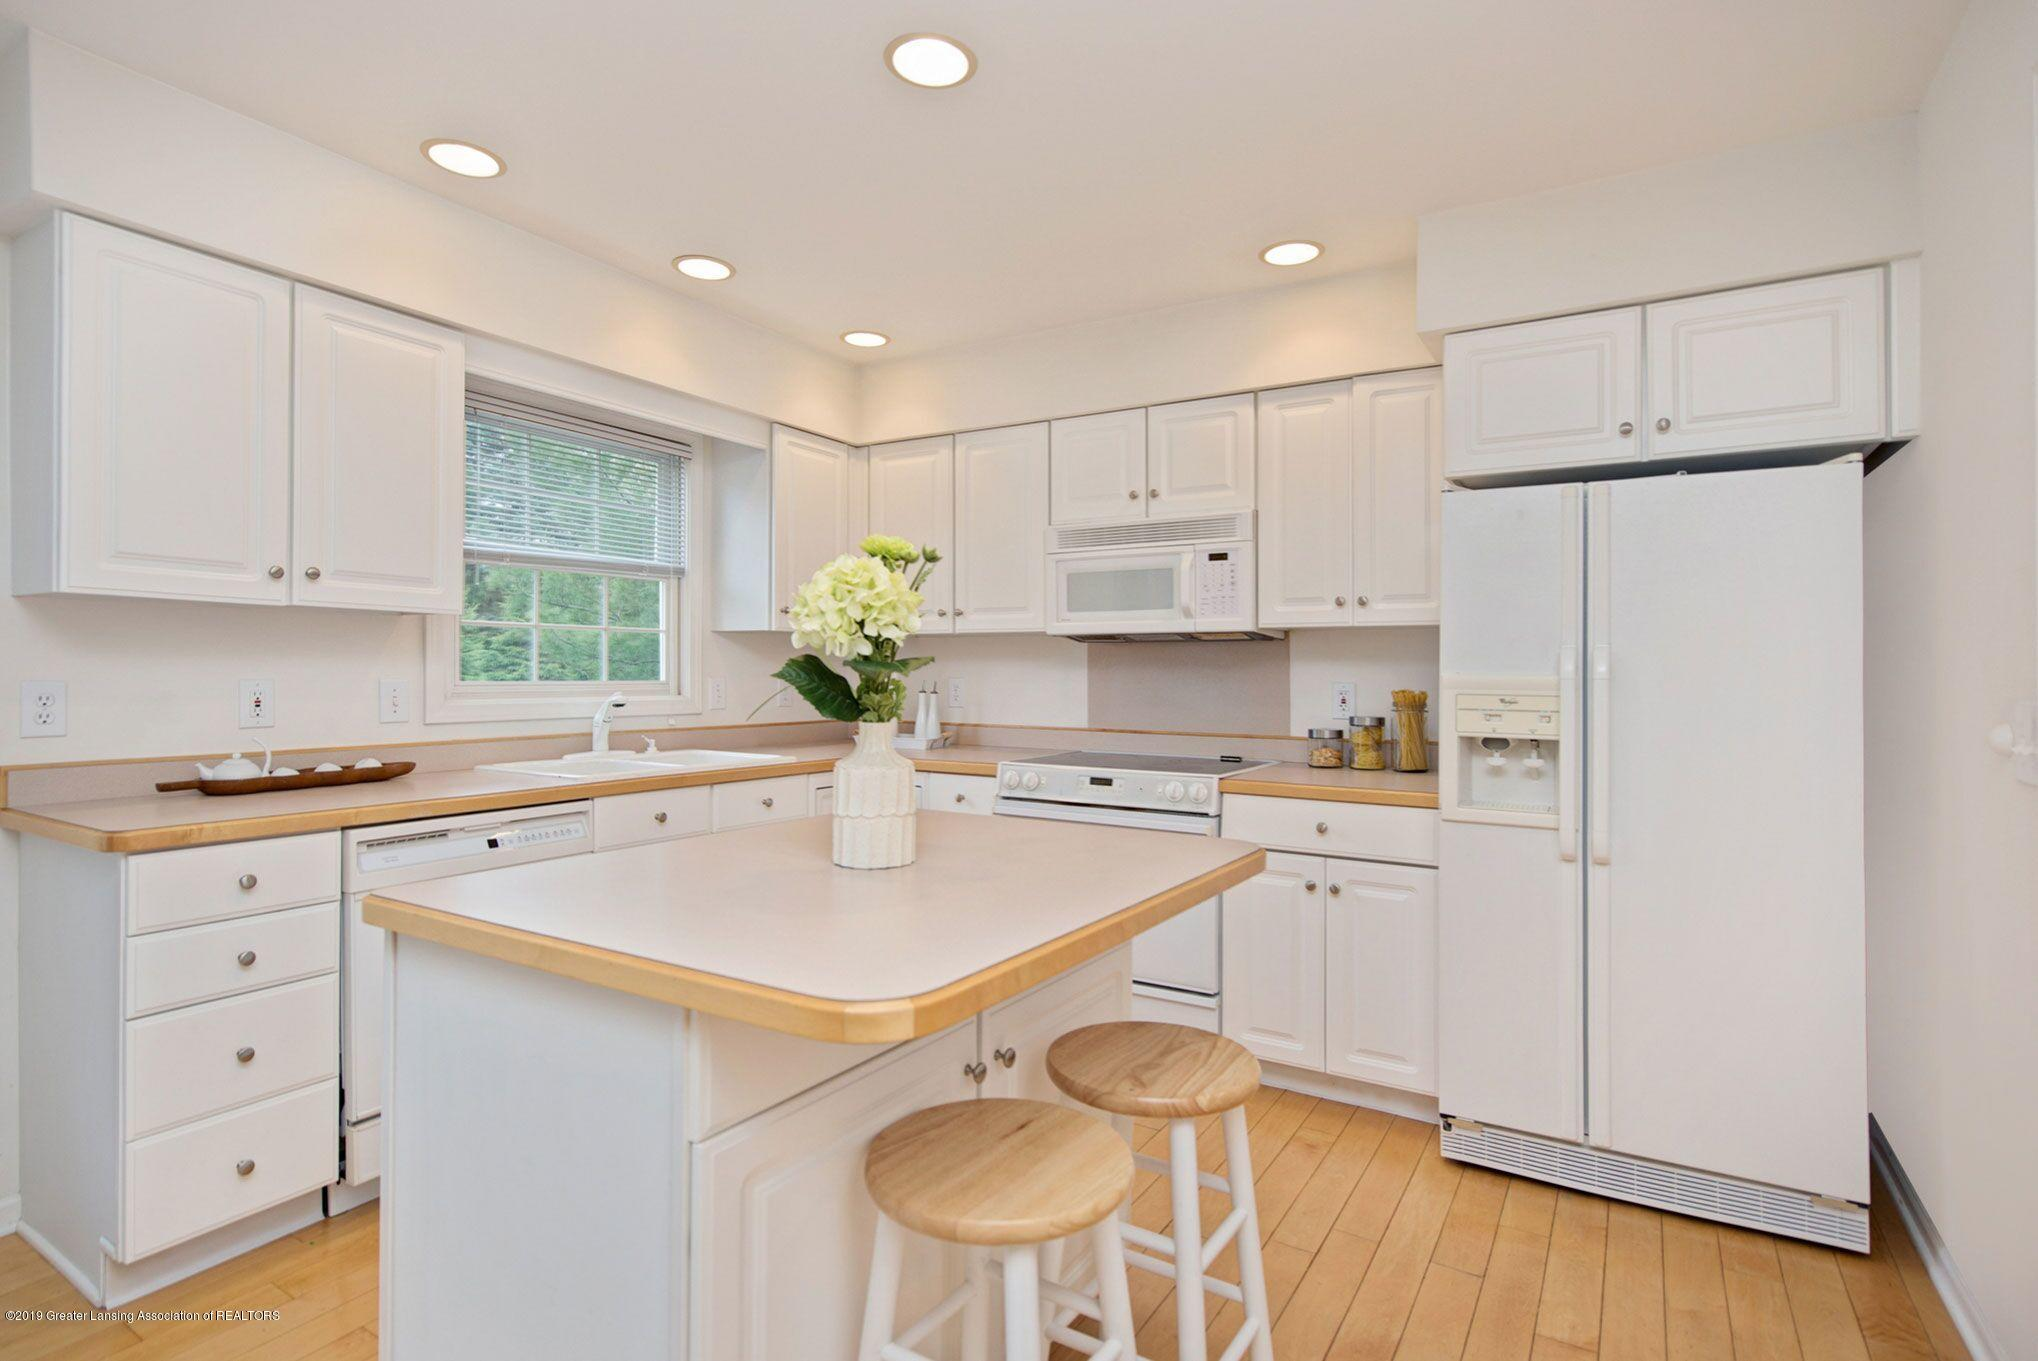 1265 Sweetwood Dr - Kitchen 2 - 12